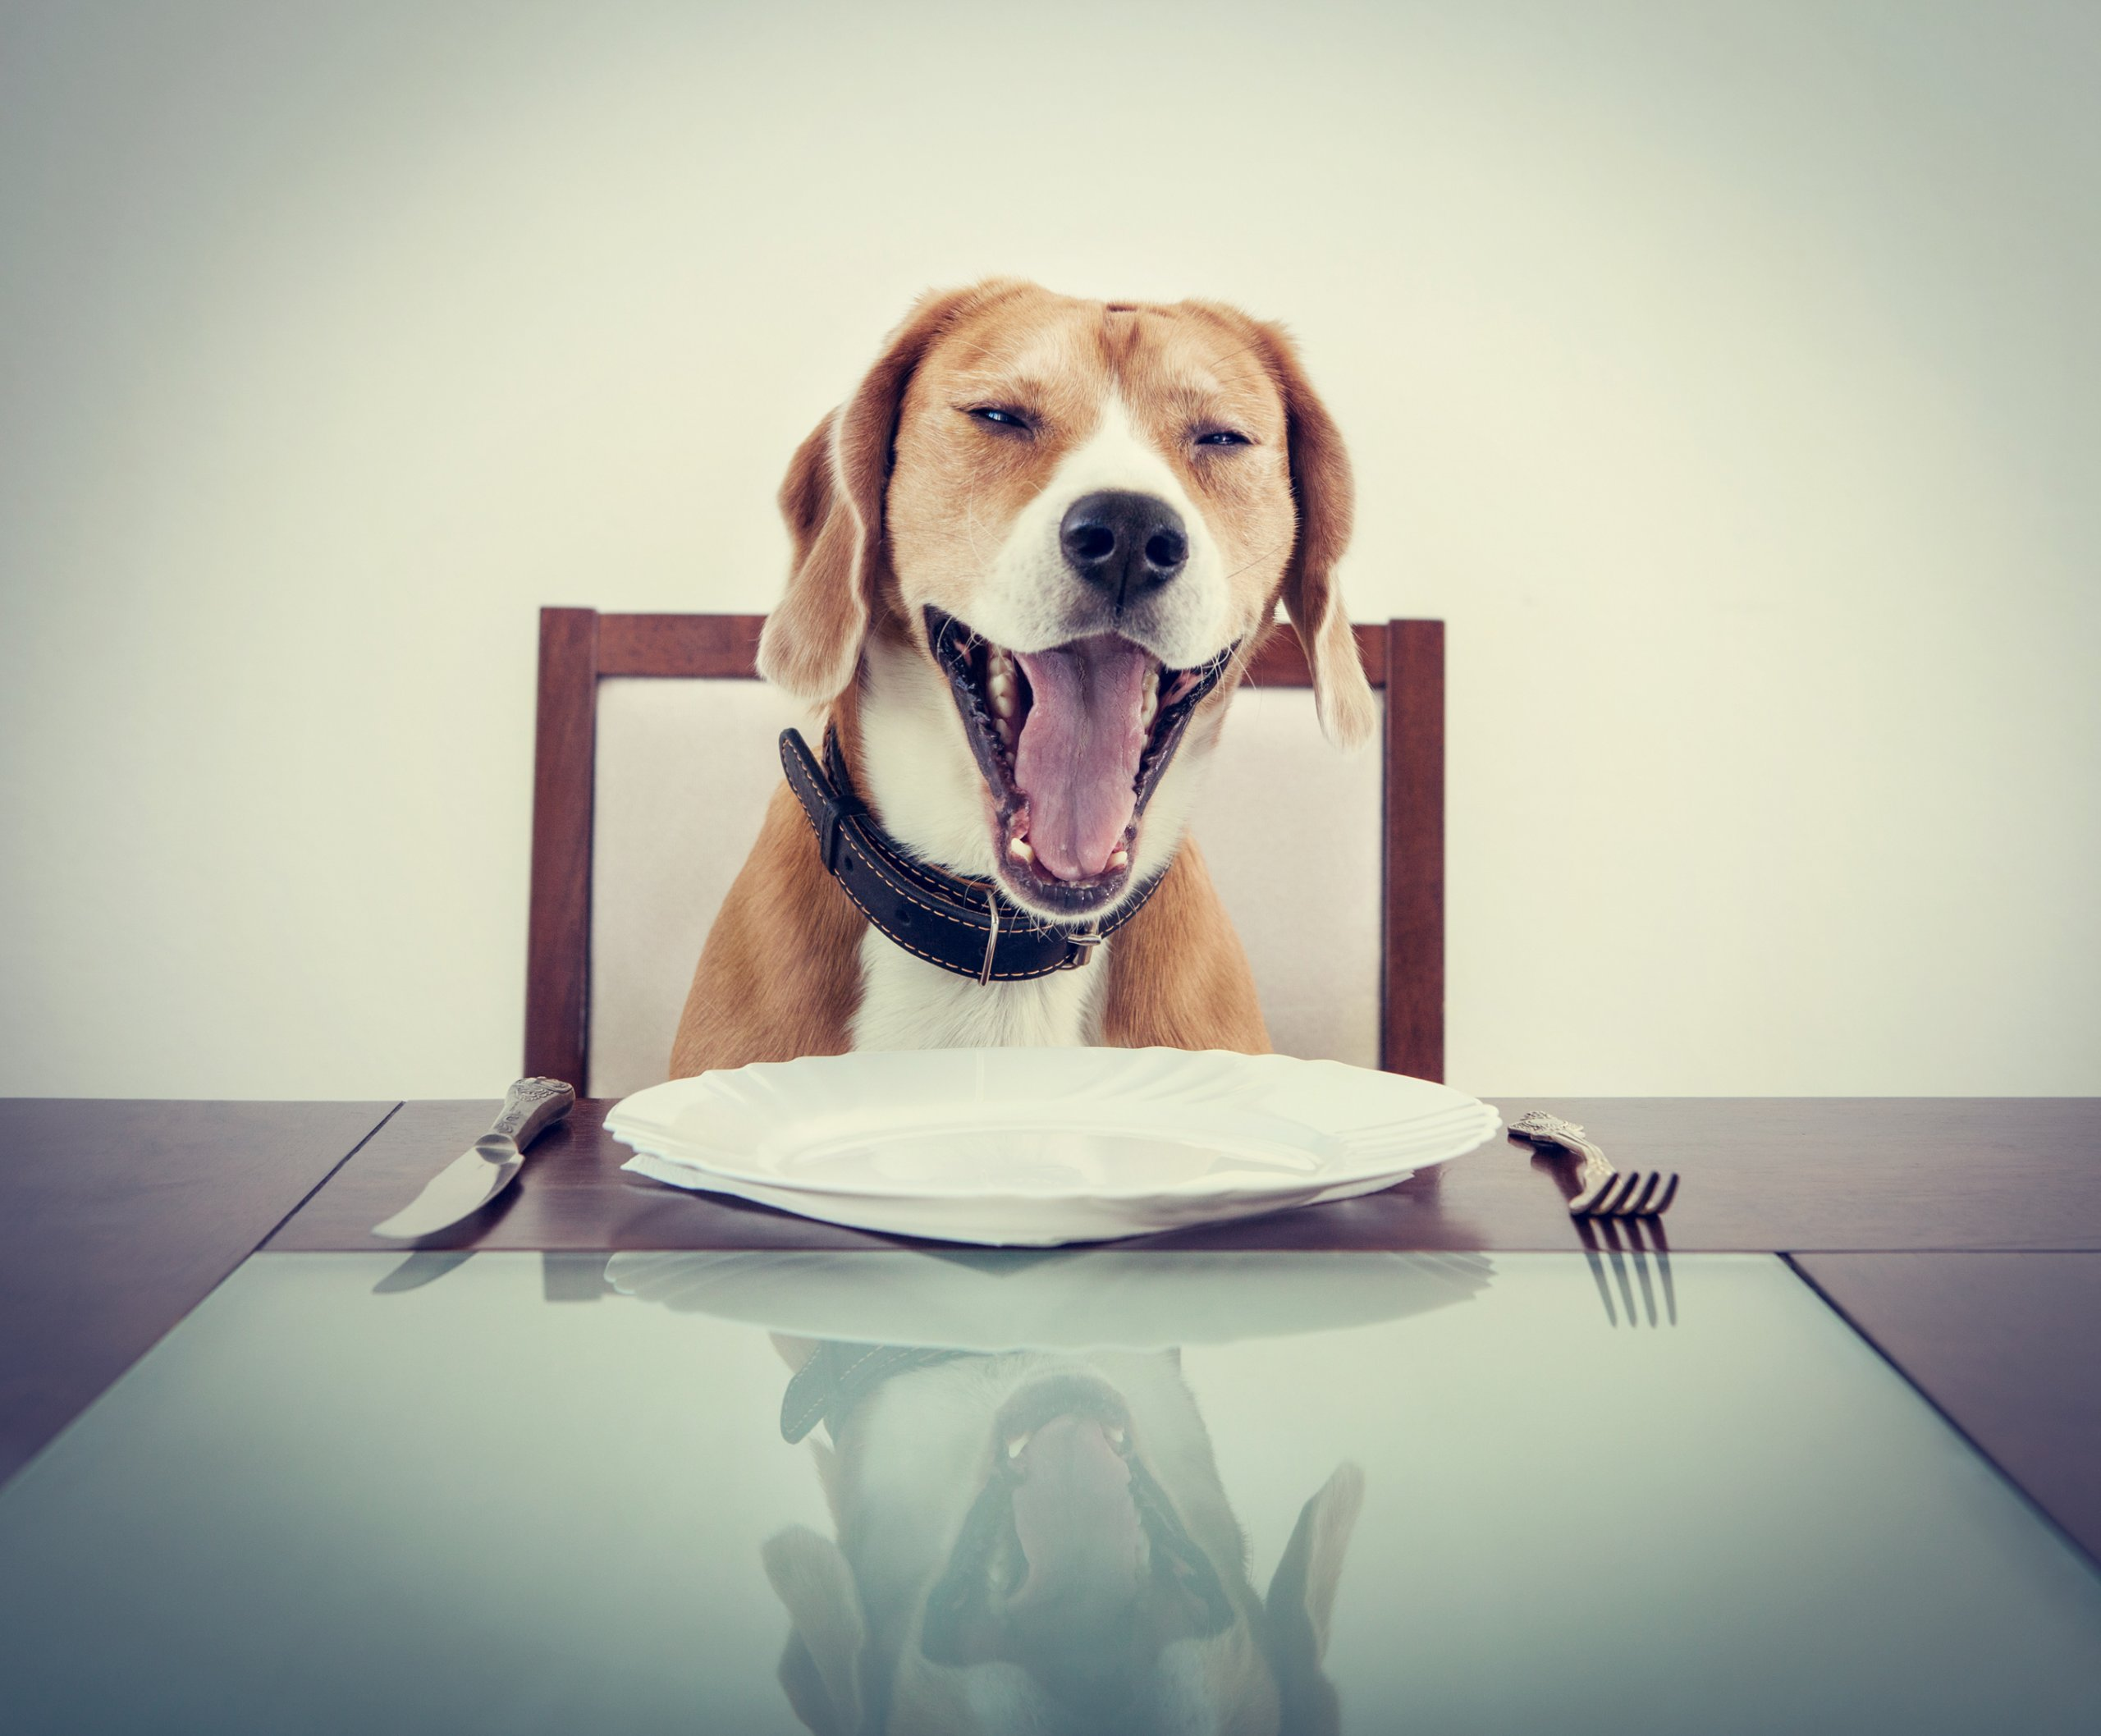 Can Dogs Eat Oatmeal